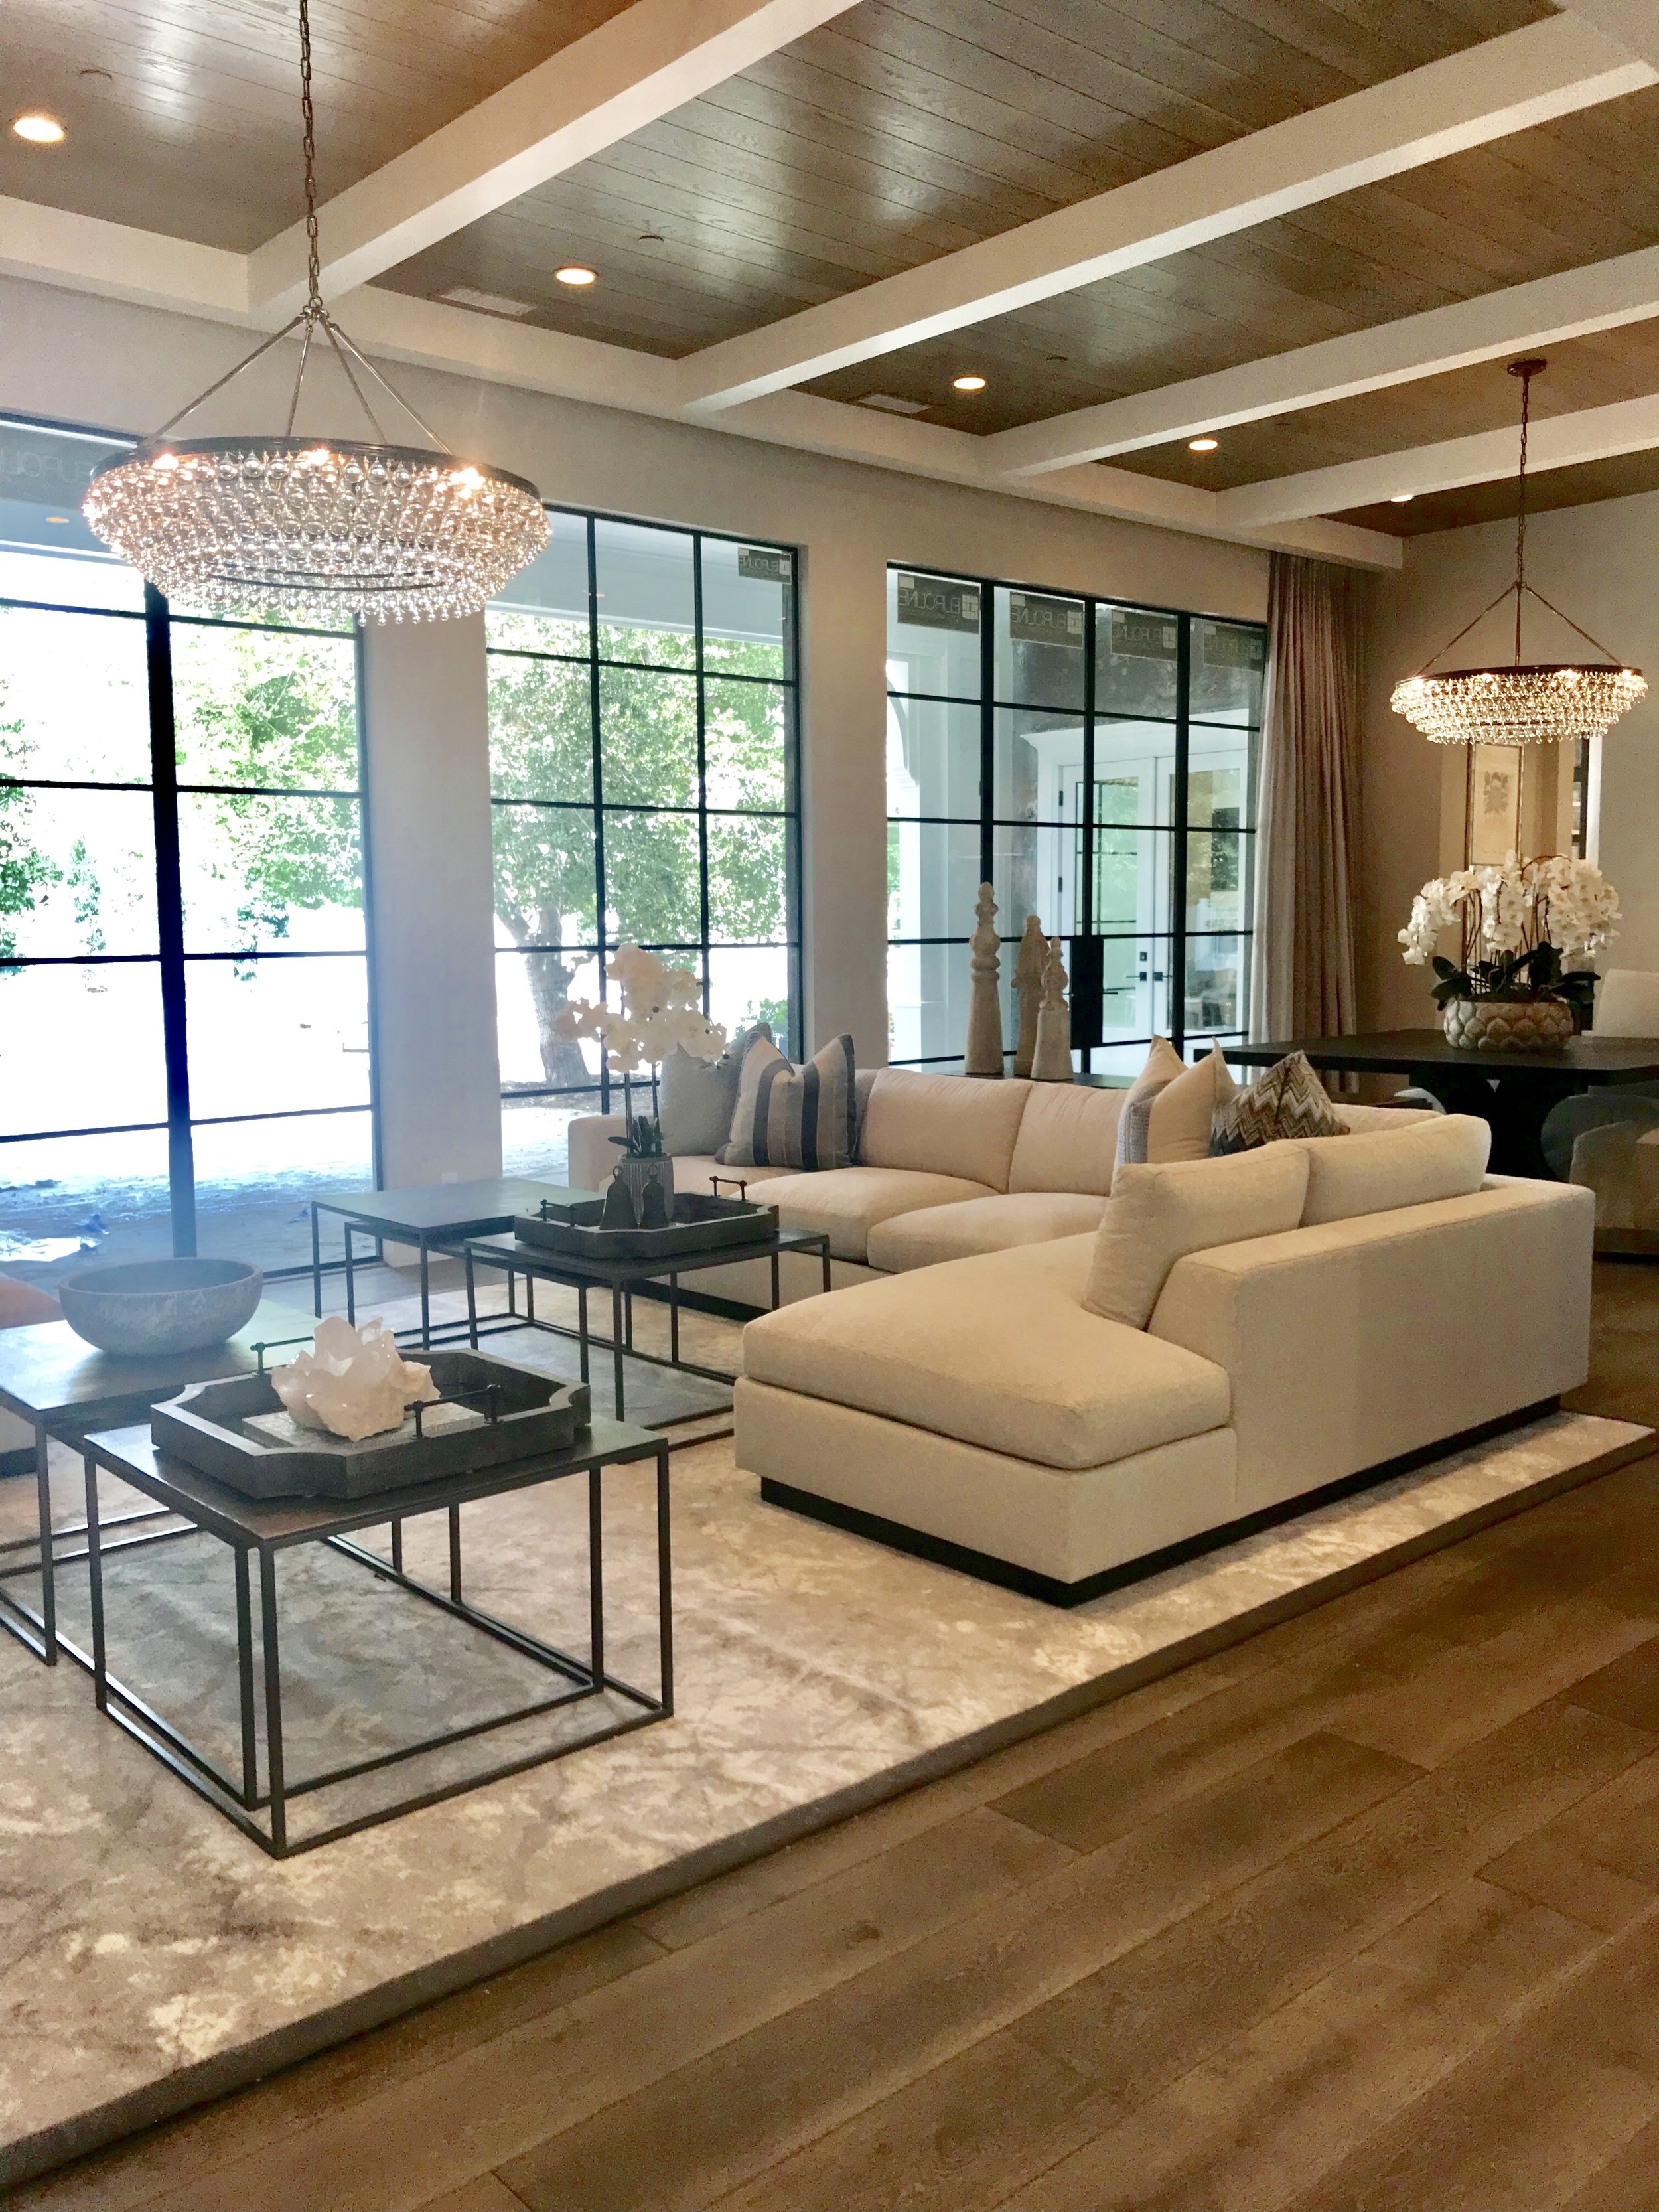 Multiple matte back steel framed doors provide expansive views of the exterior grounds and poolside and the white ceiling beams with warm wood T&G compliment the high ceilings tying in design elements from the entryway.